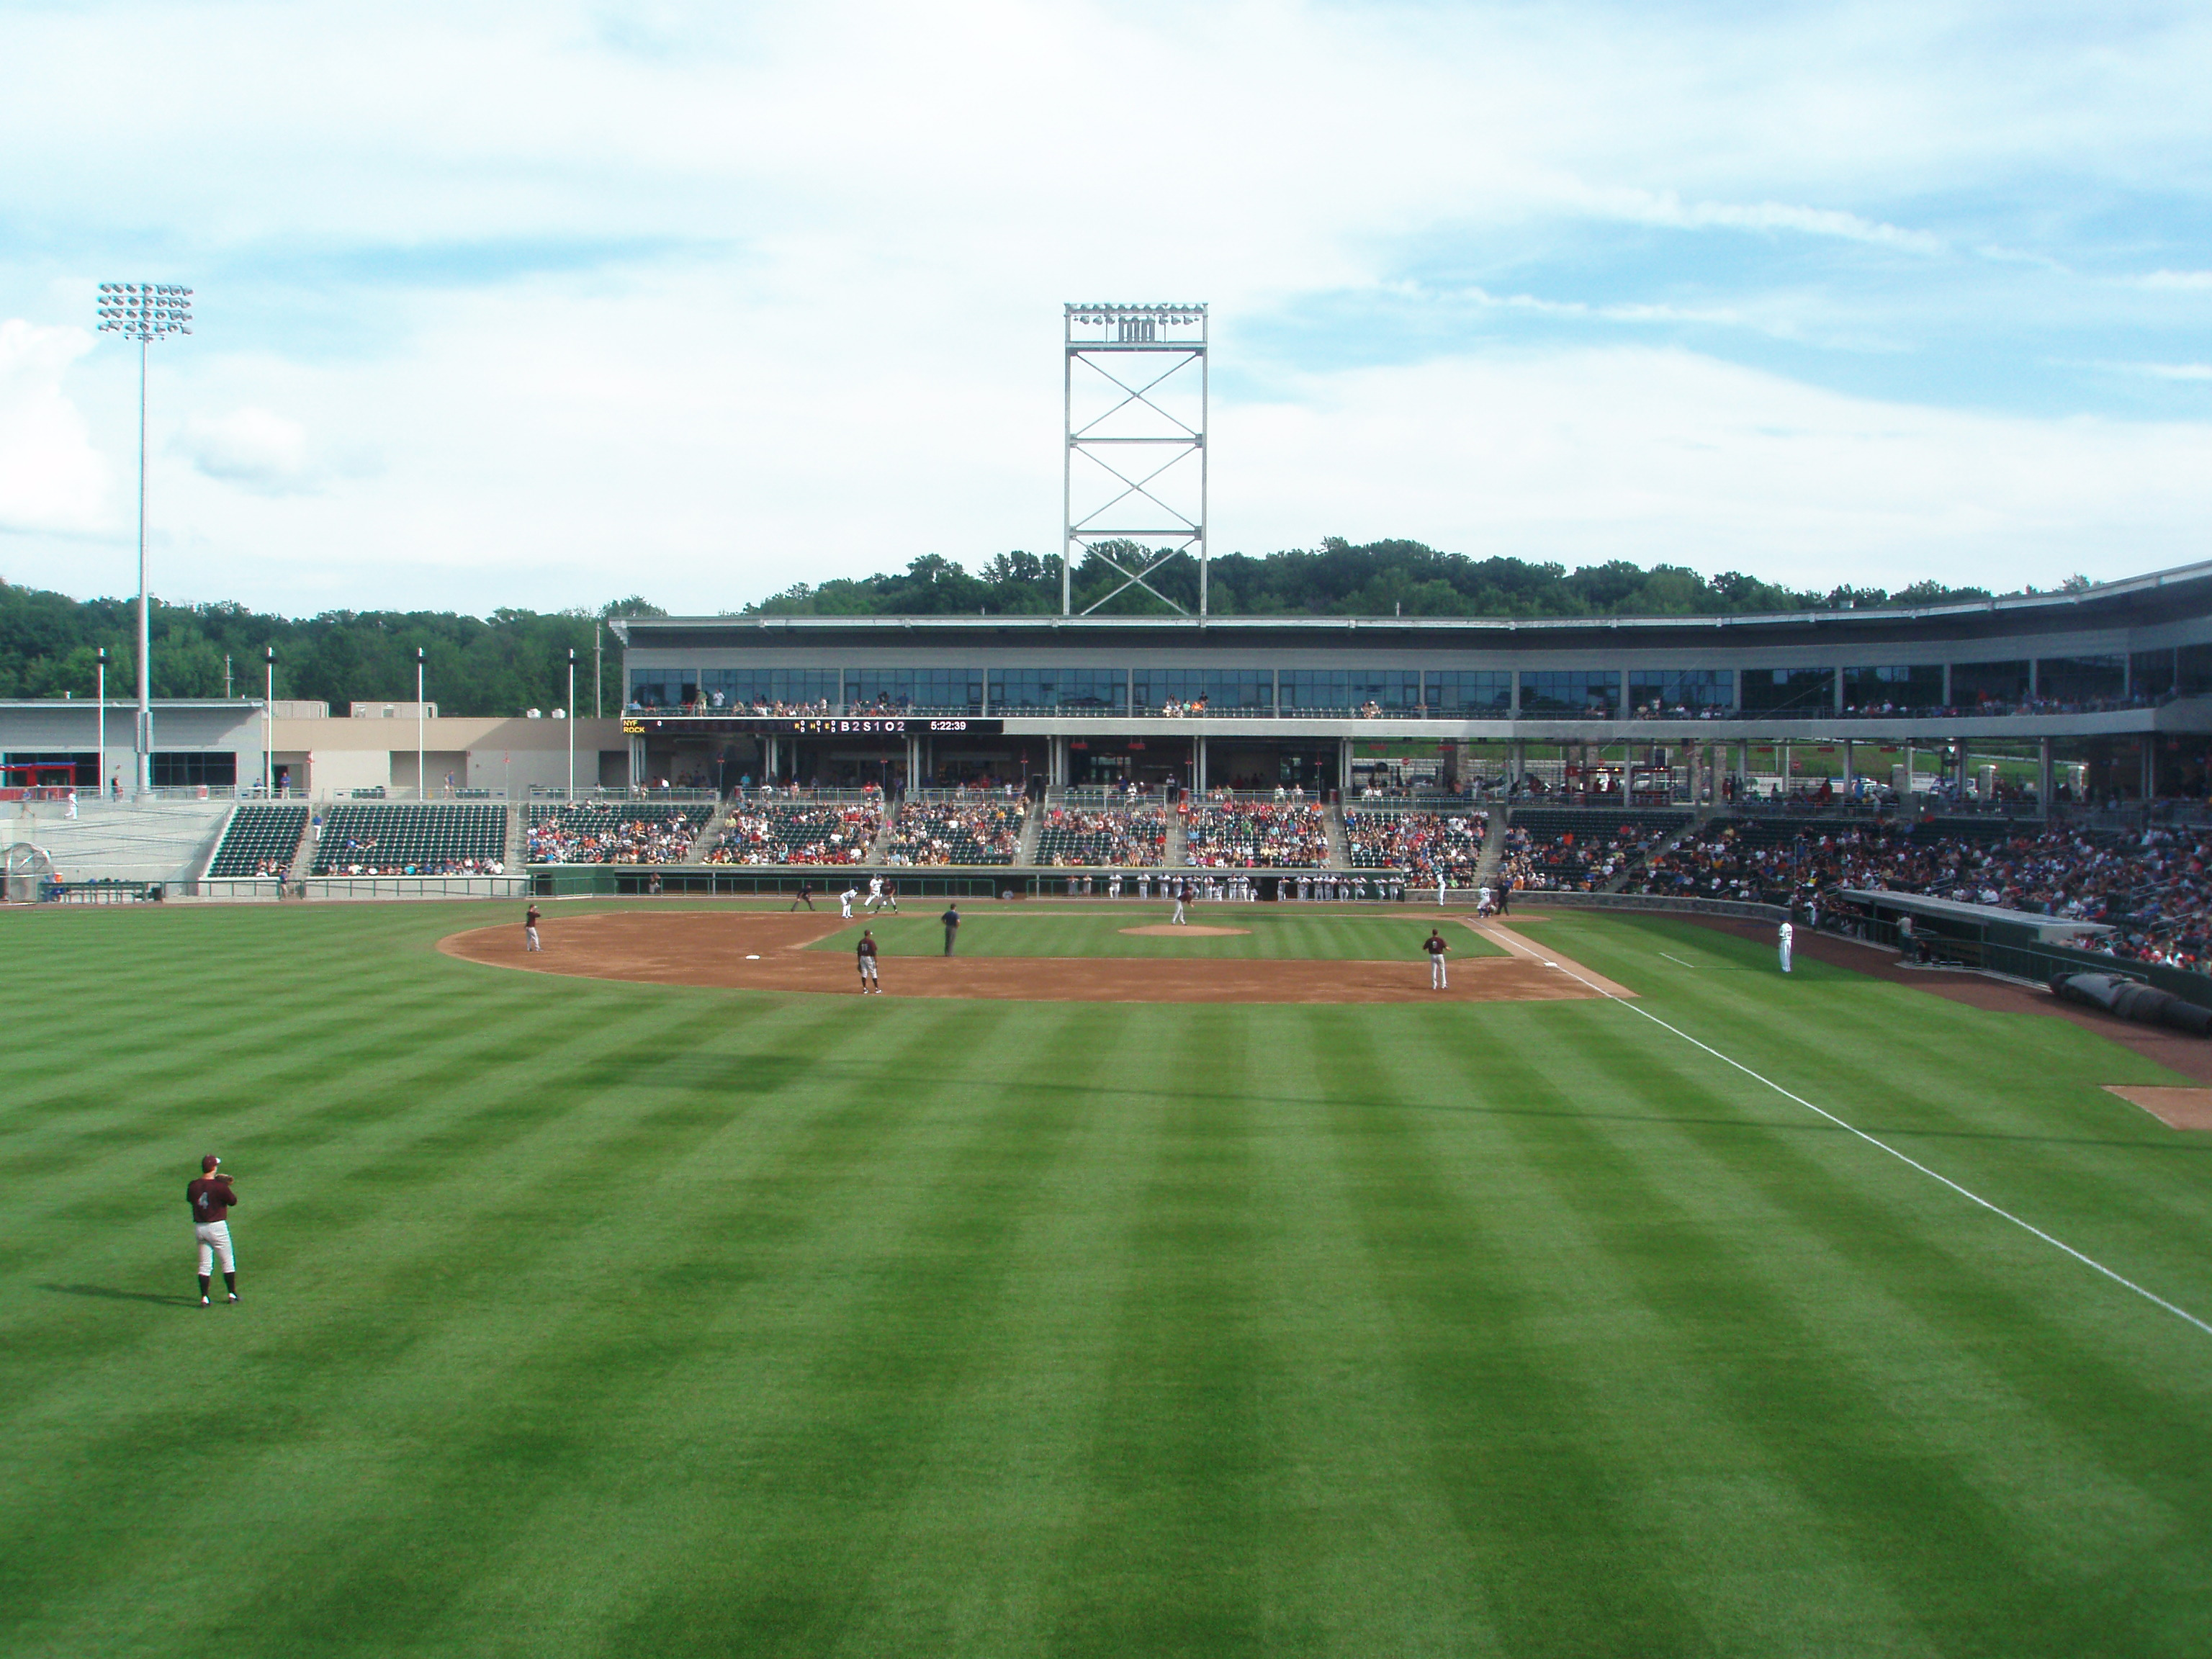 Covid-19 Vaccine Available for Ages 12+ At Boulders Stadium